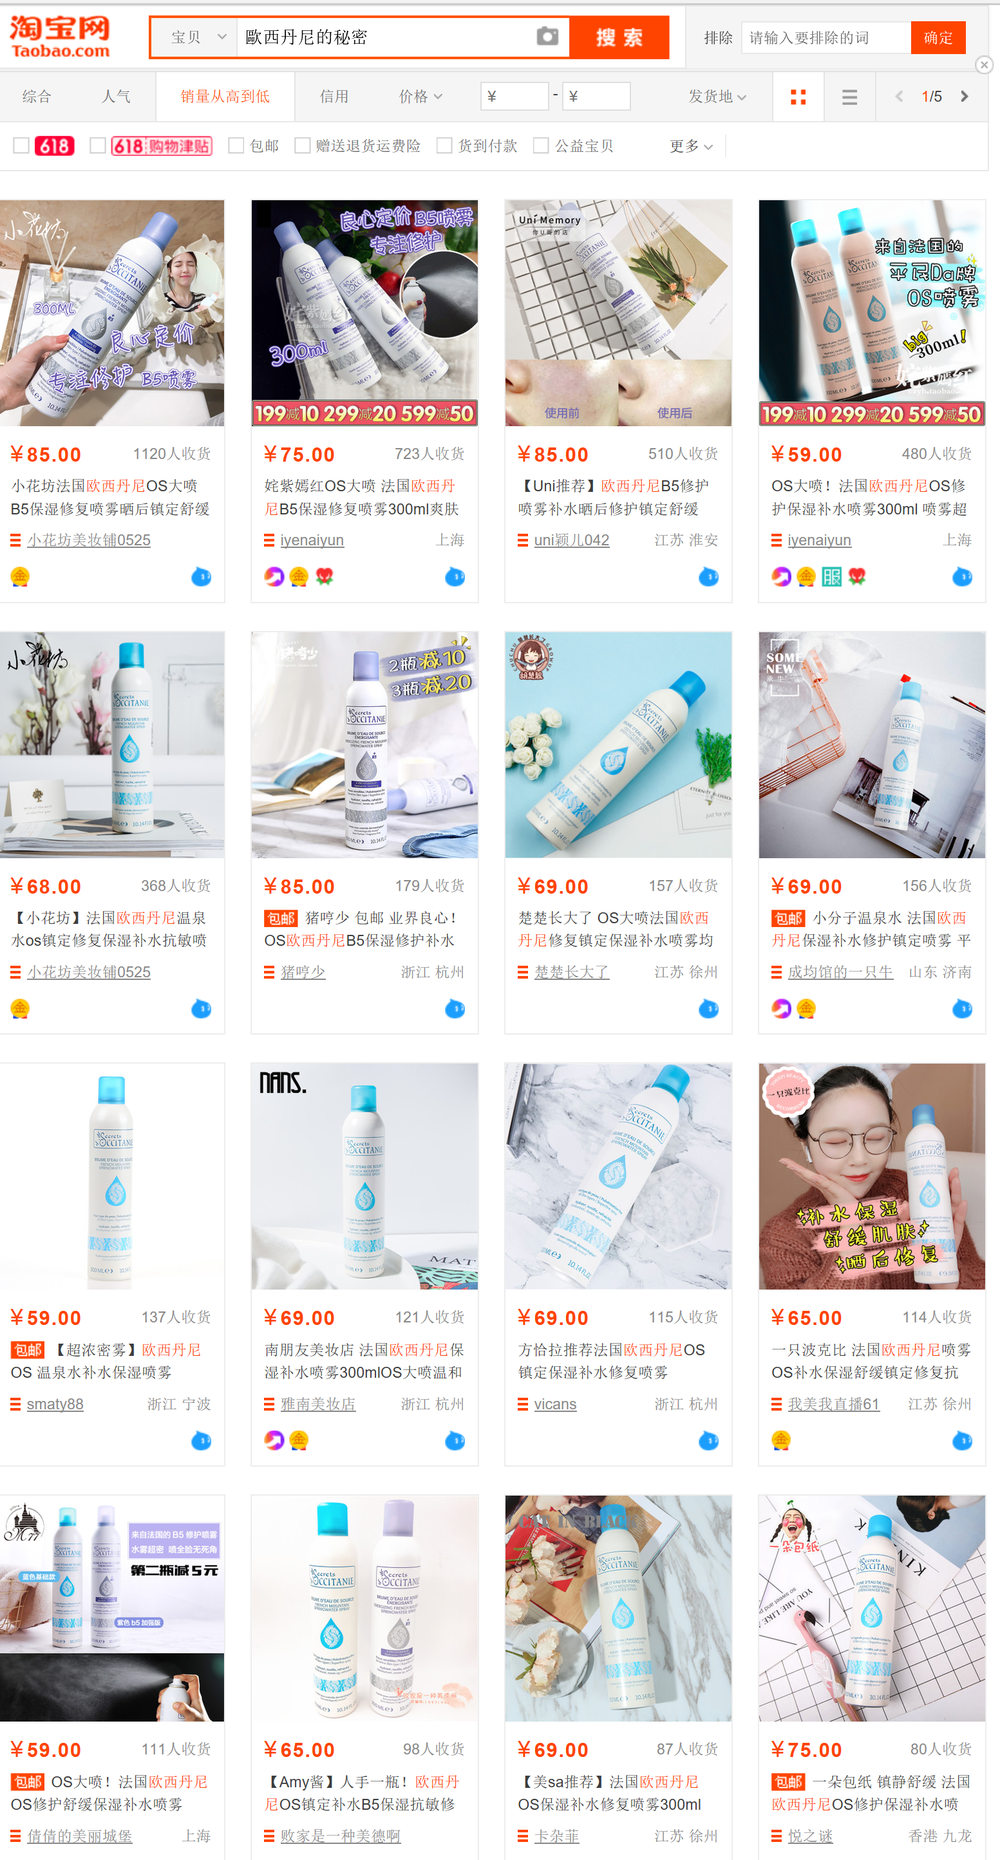 SO_TaoBao_June18.png